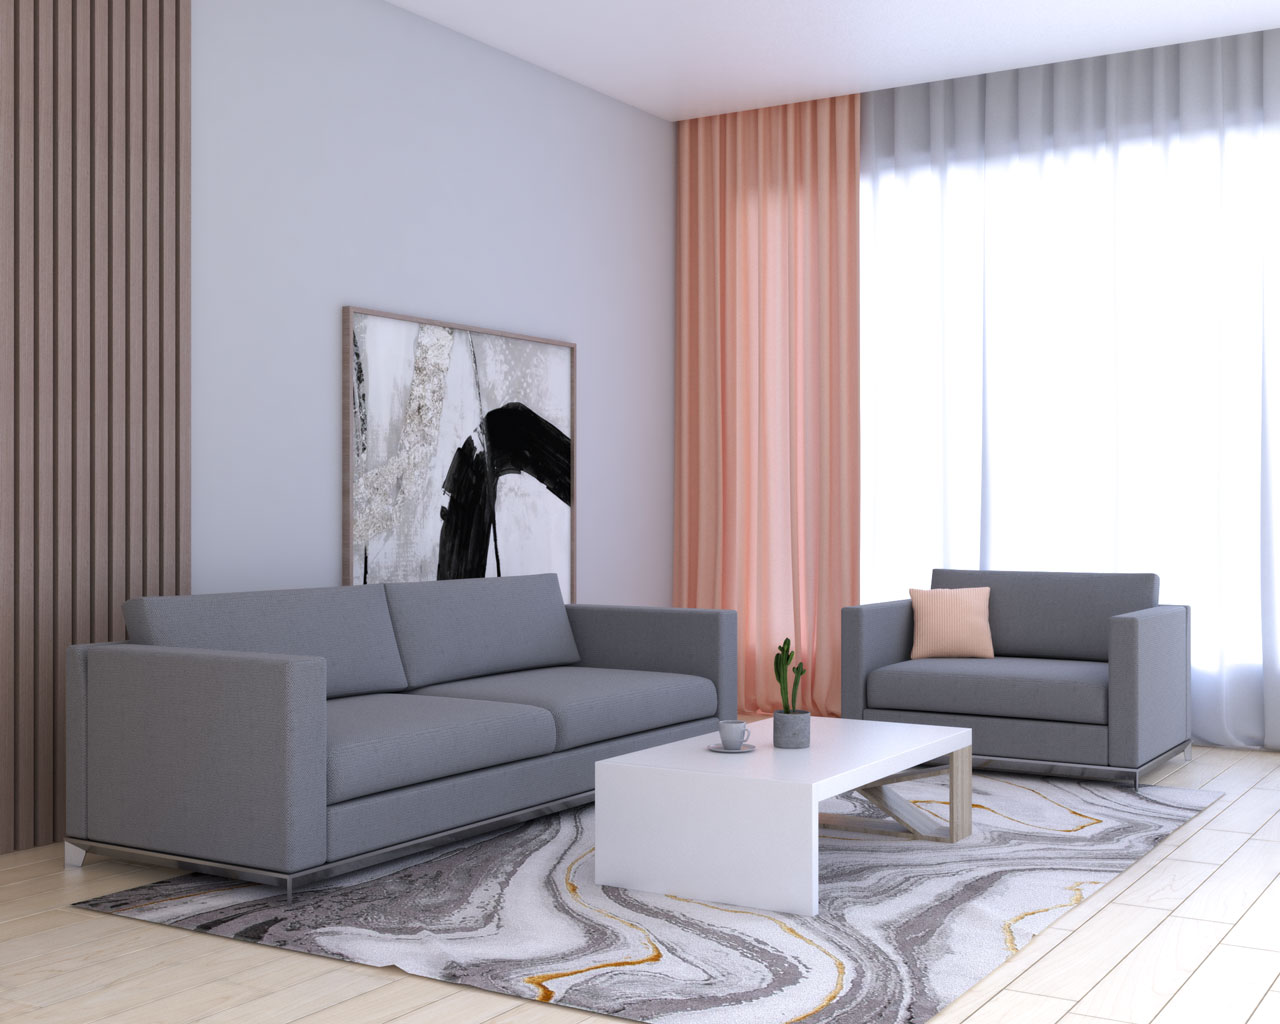 Coral curtains with grey furniture